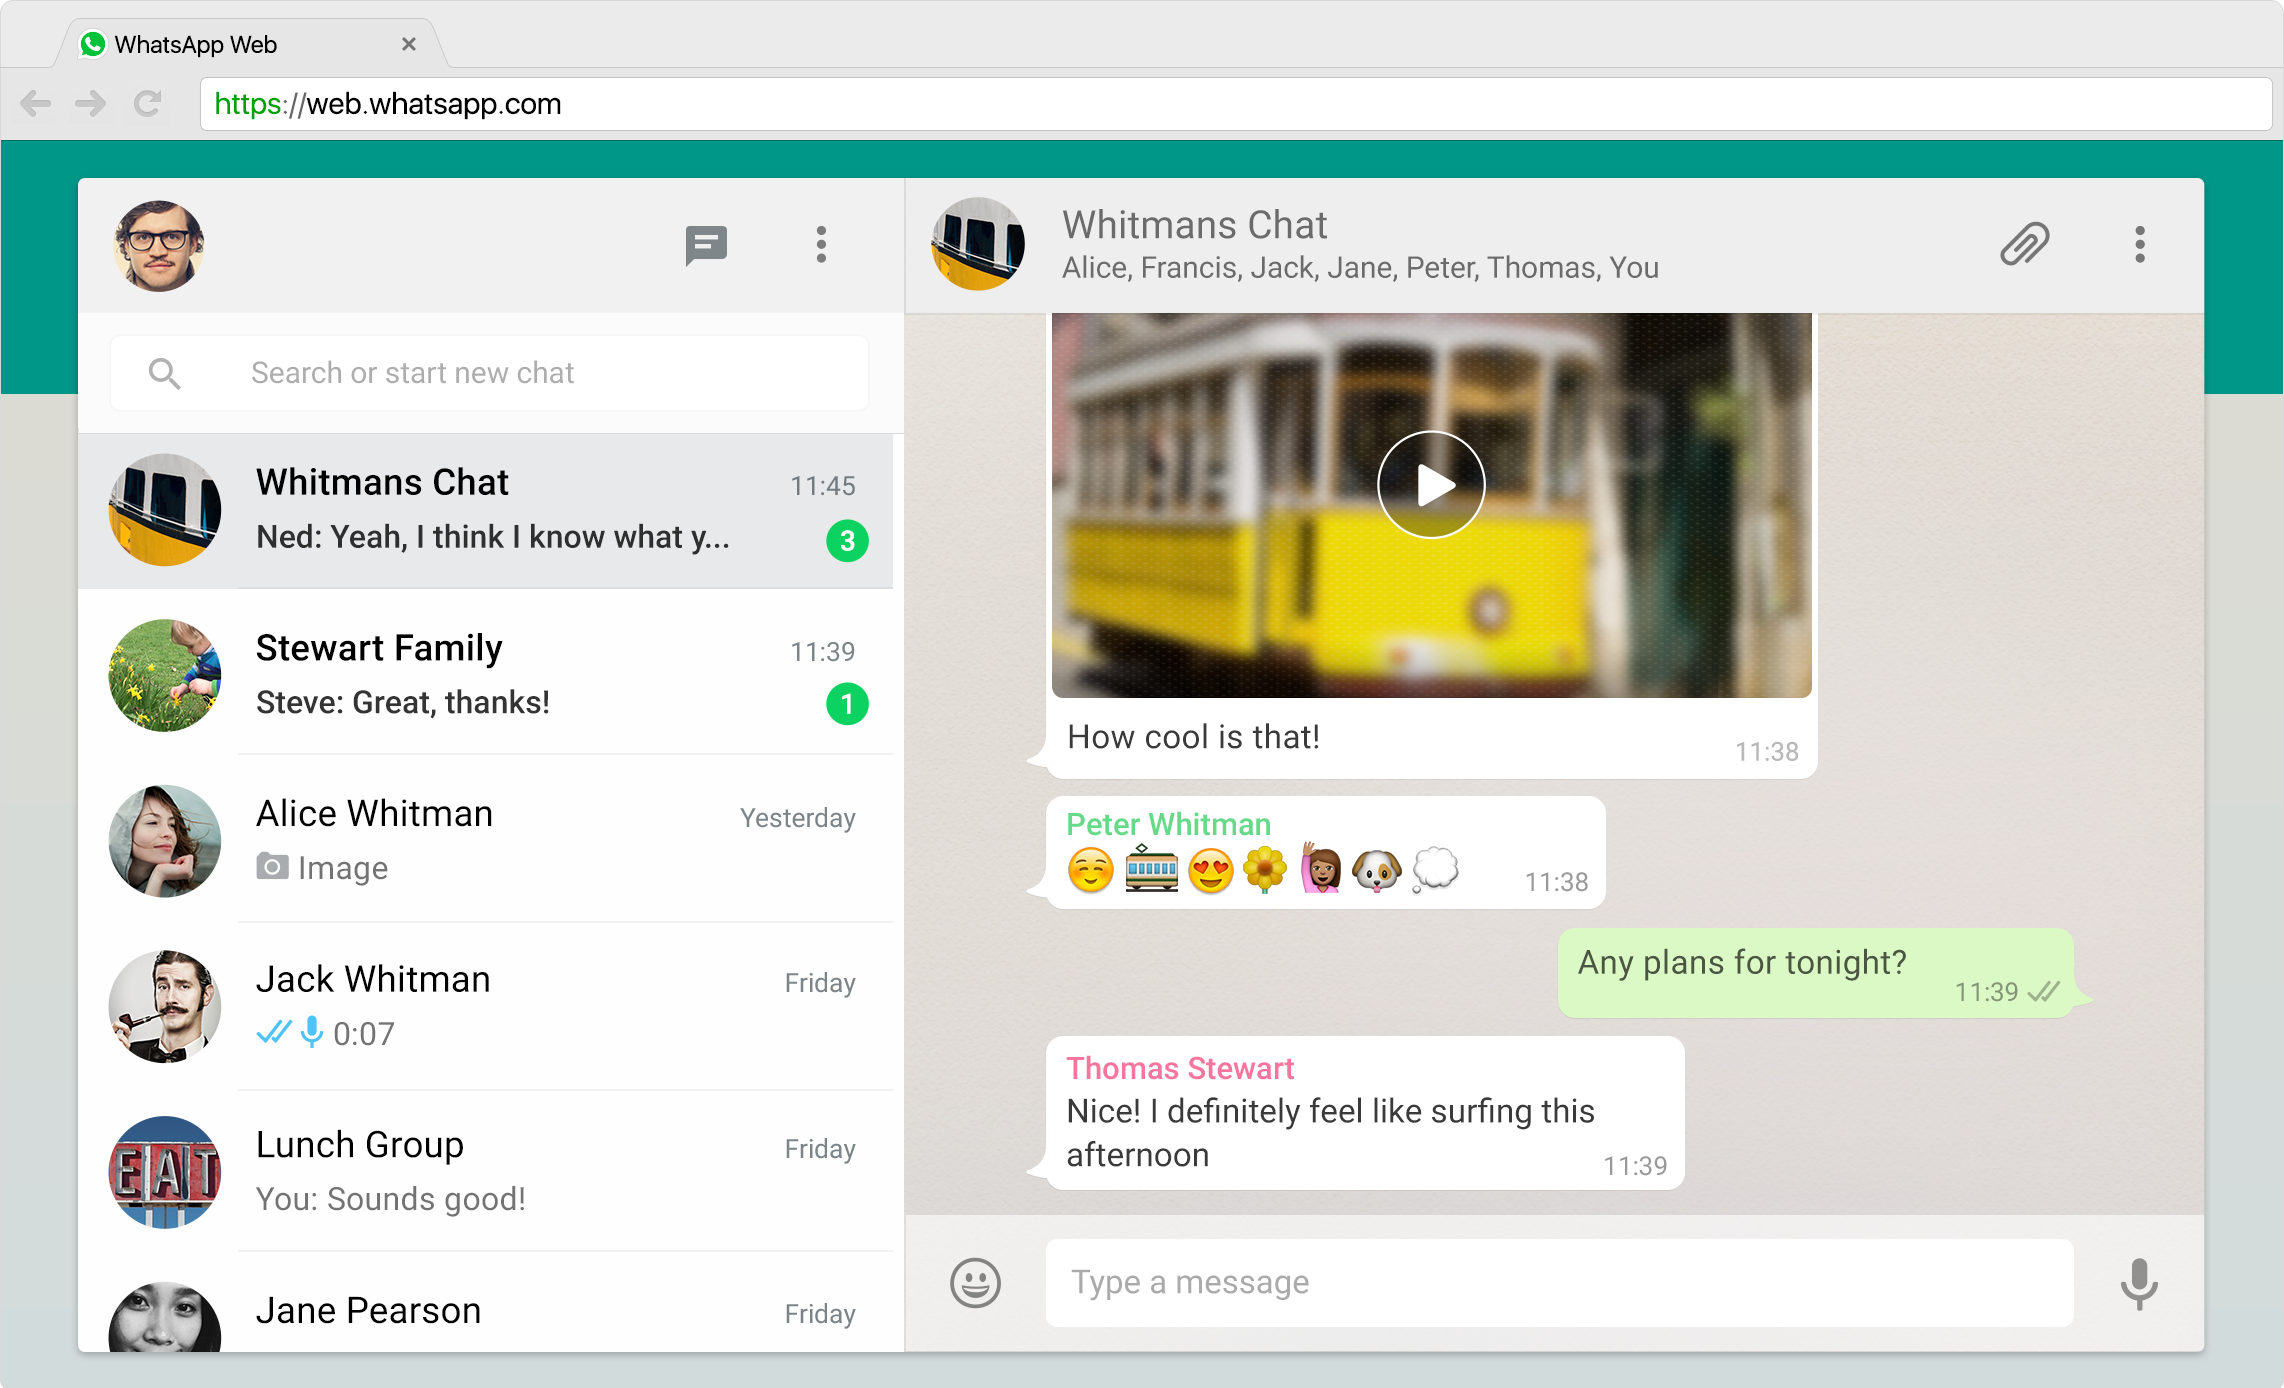 Facebook's influence evident as WhatsApp ends consumer fees to profit from businesses